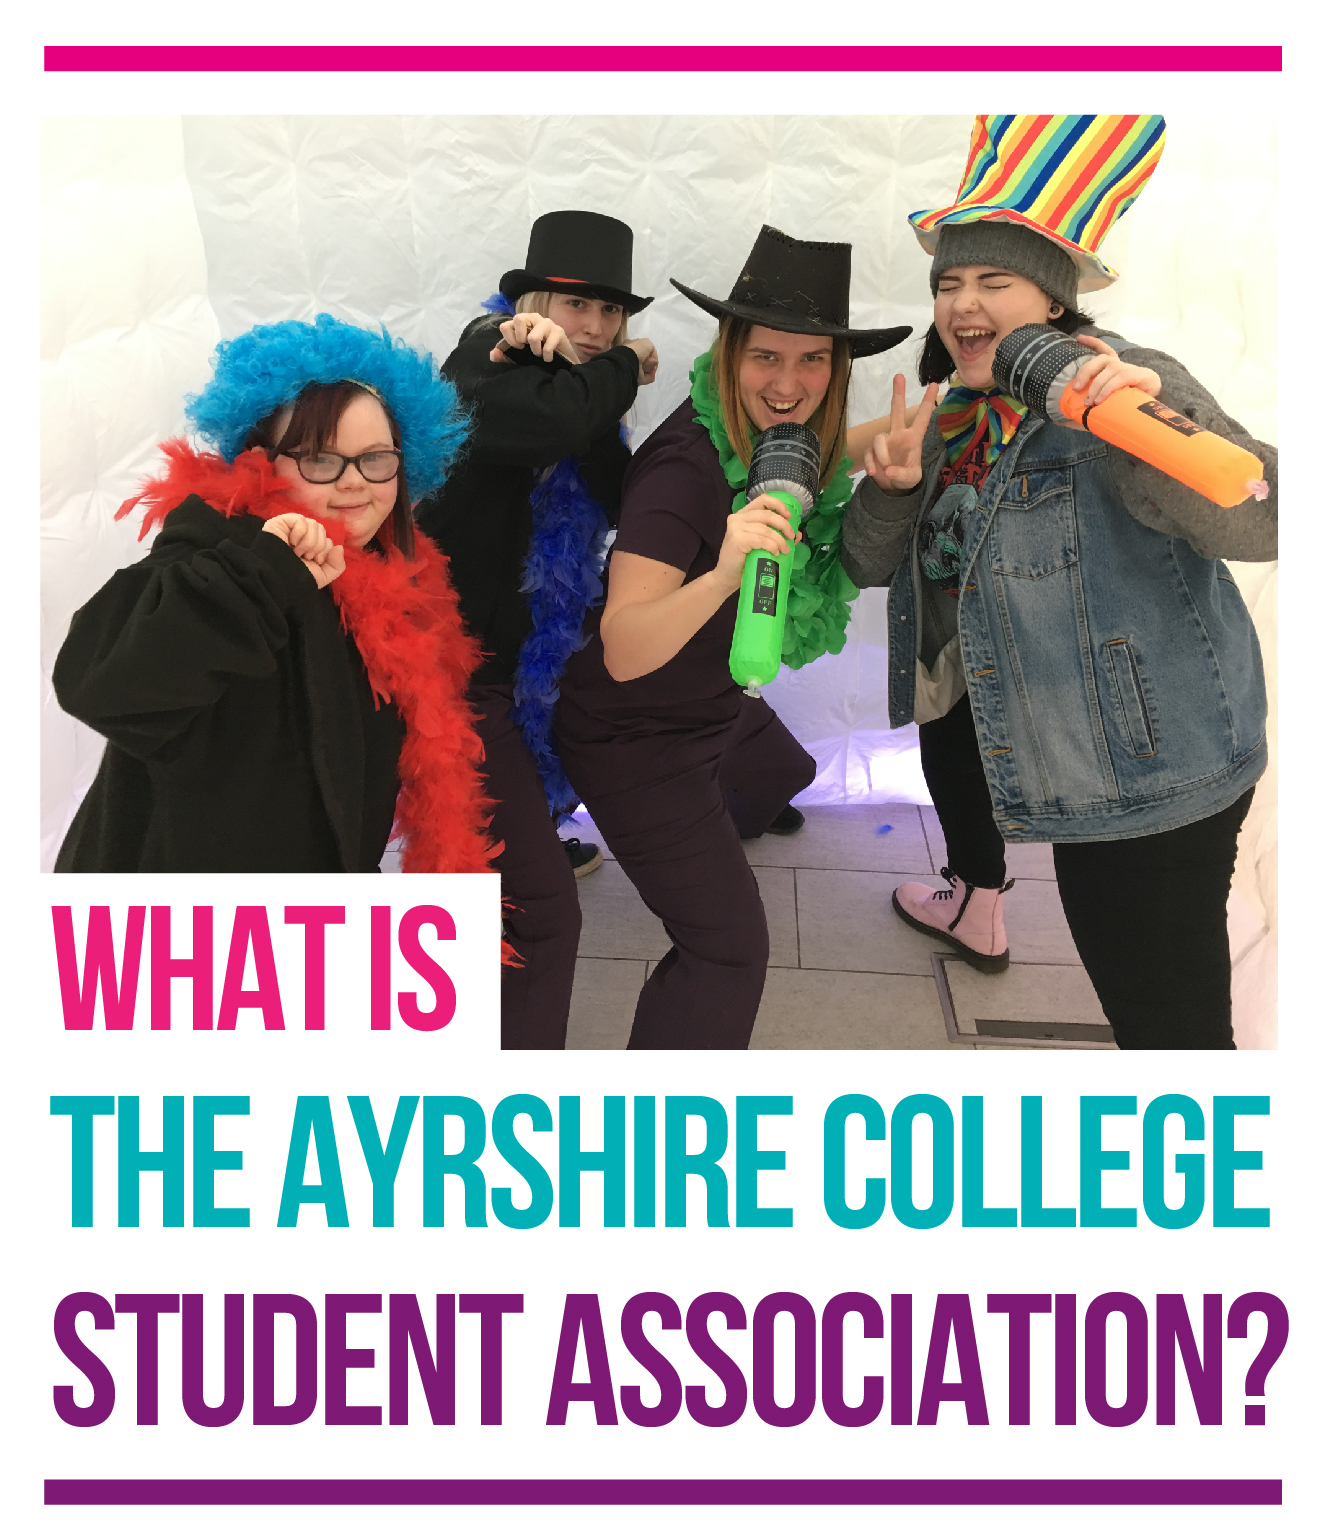 What is Ayrshire College Student Association image 3.jpg